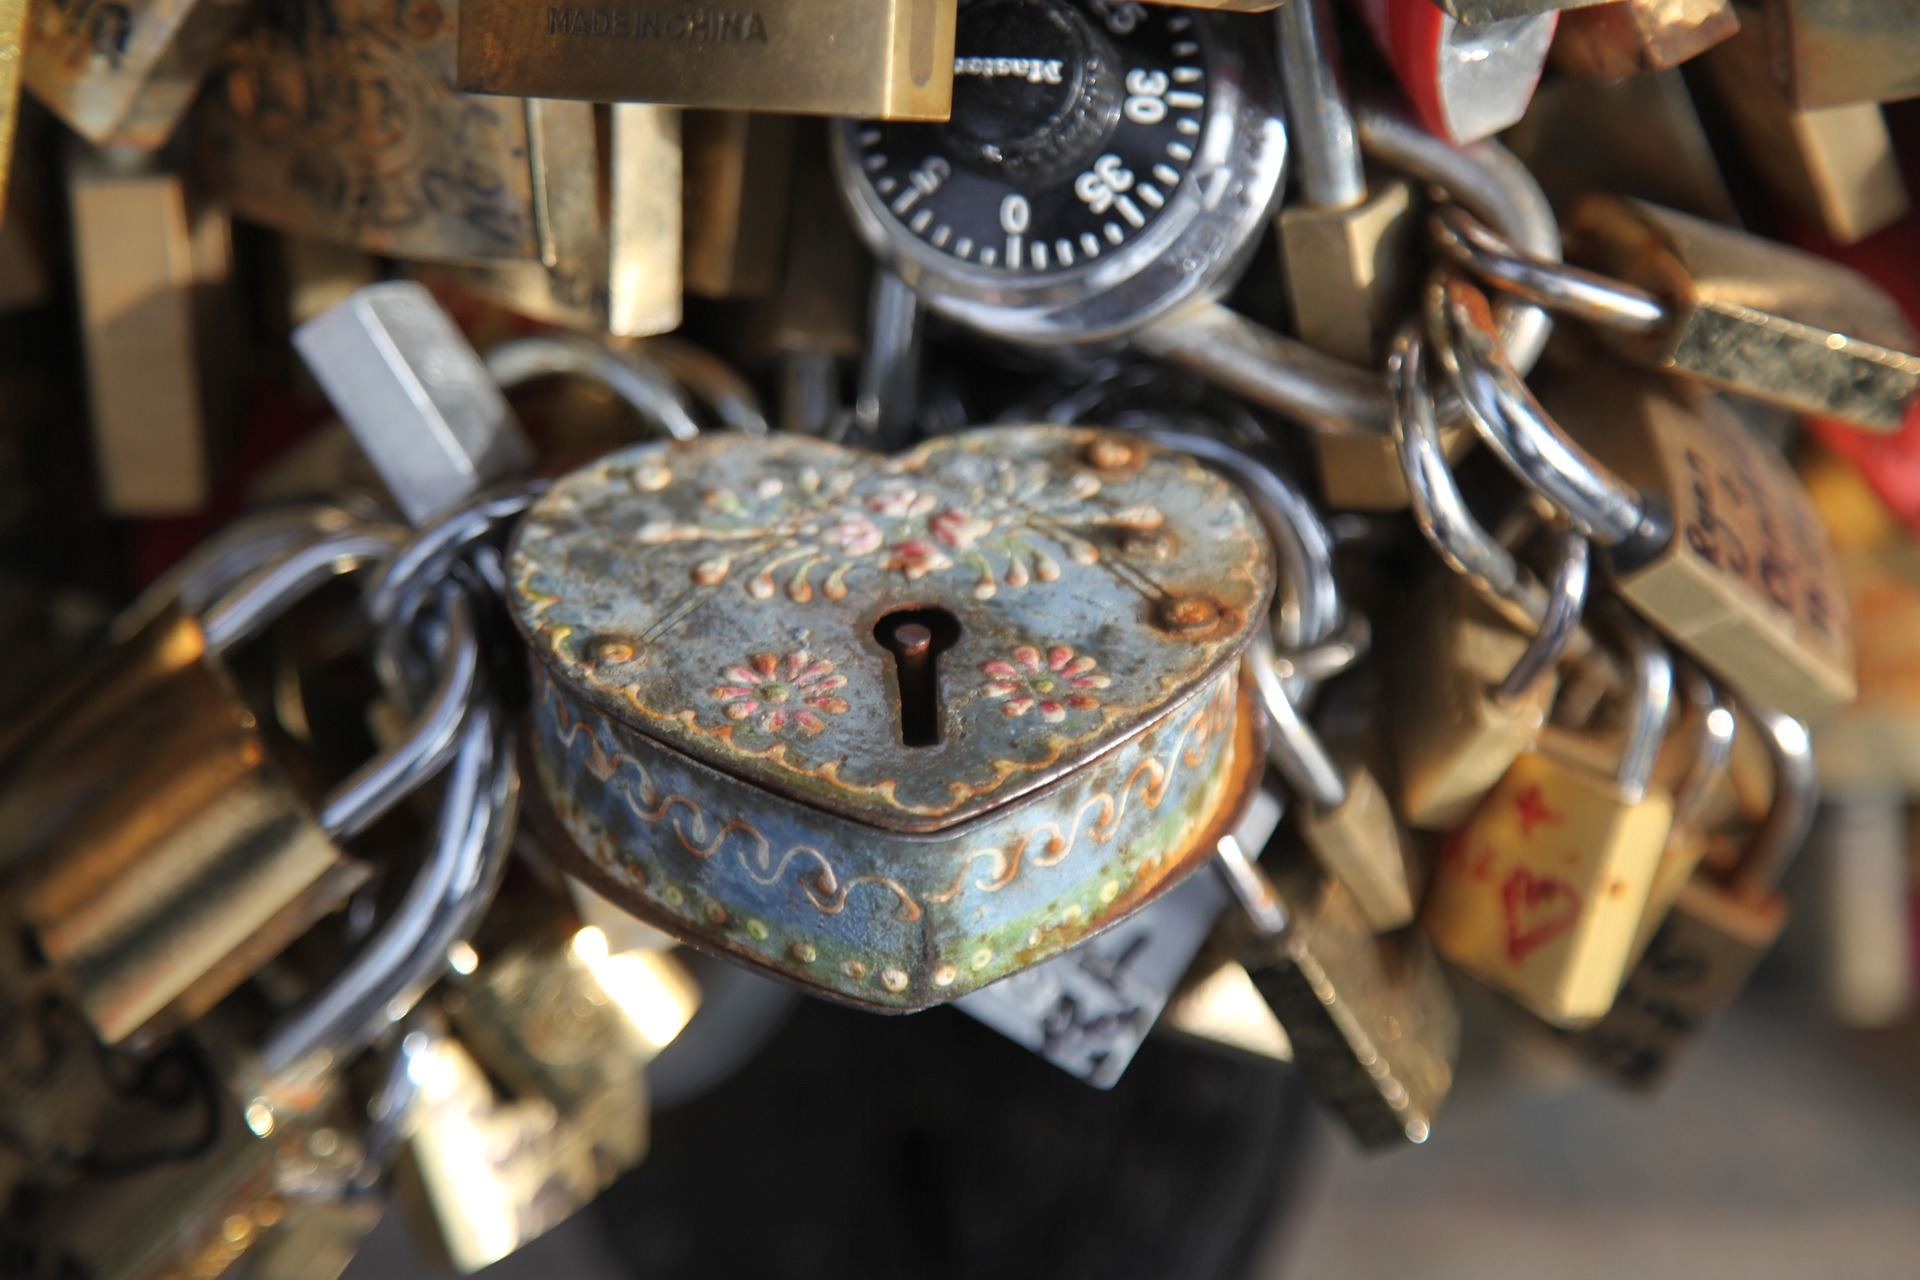 Locksmith Services in Liverpool